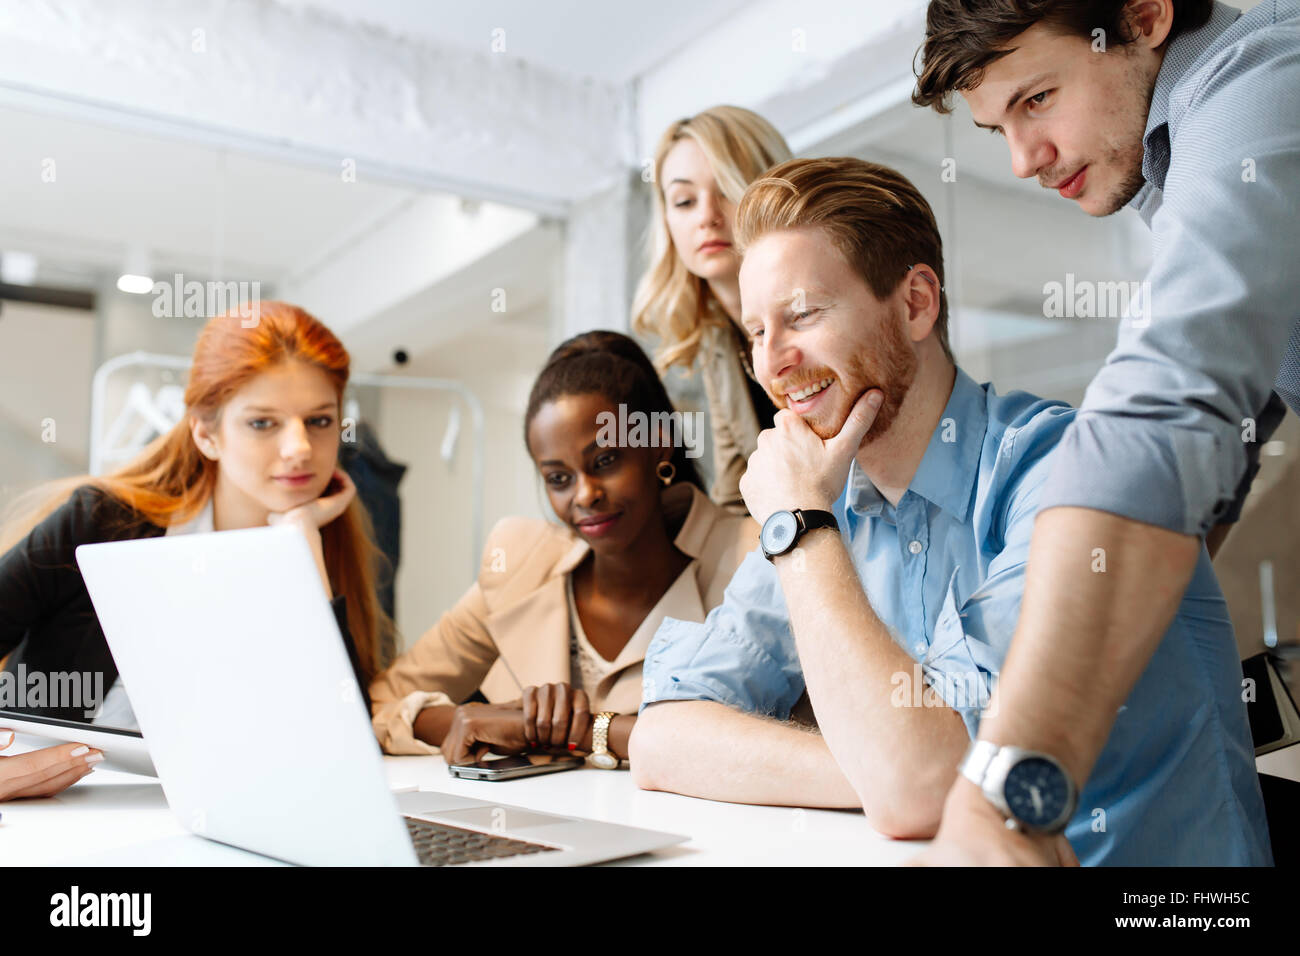 Group of business people working in office and discussing new ideas - Stock Image